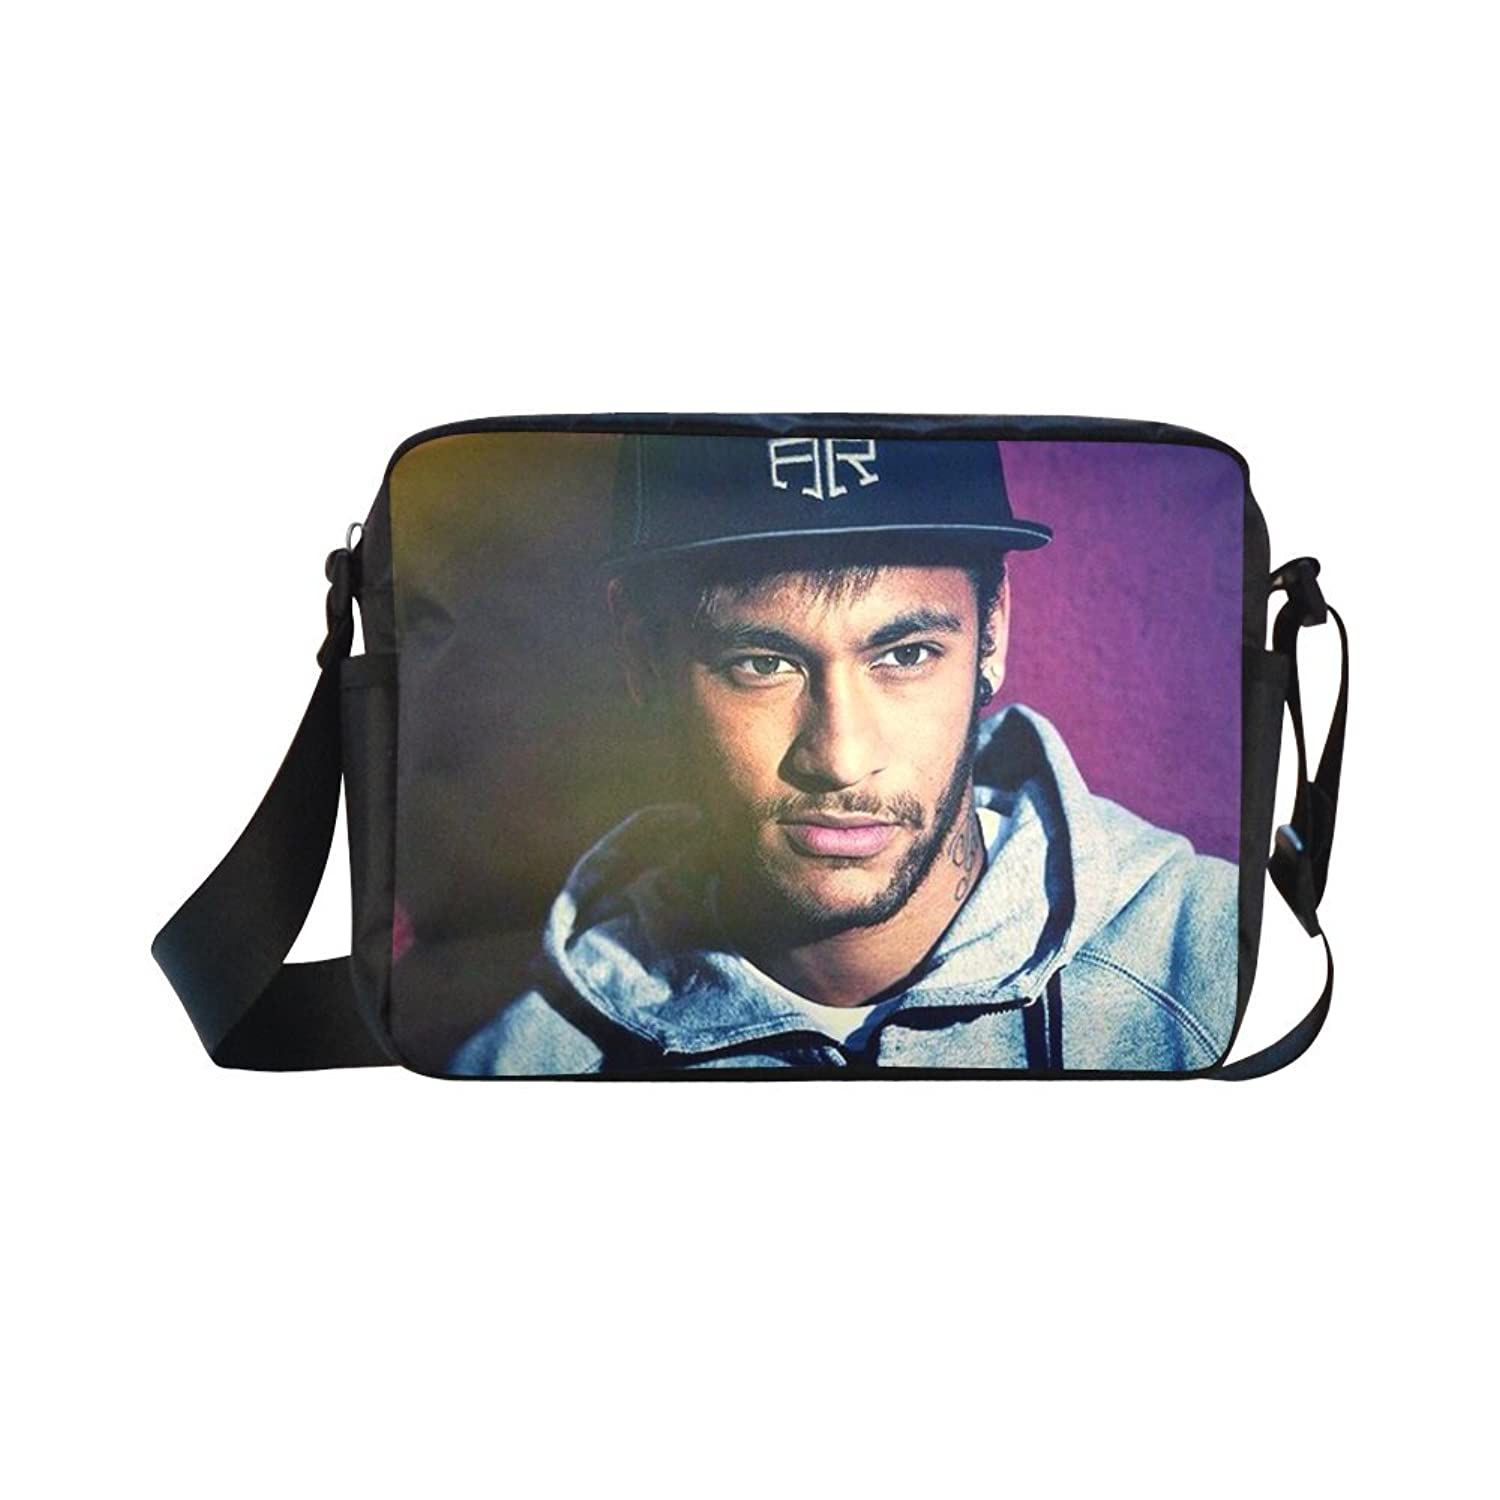 DOROT Neymar Olympics Brazil Football Team 2016 Champion Unisex Nylon Waterproof Material Black Cross-body Nylon Bags Shoulder Bag